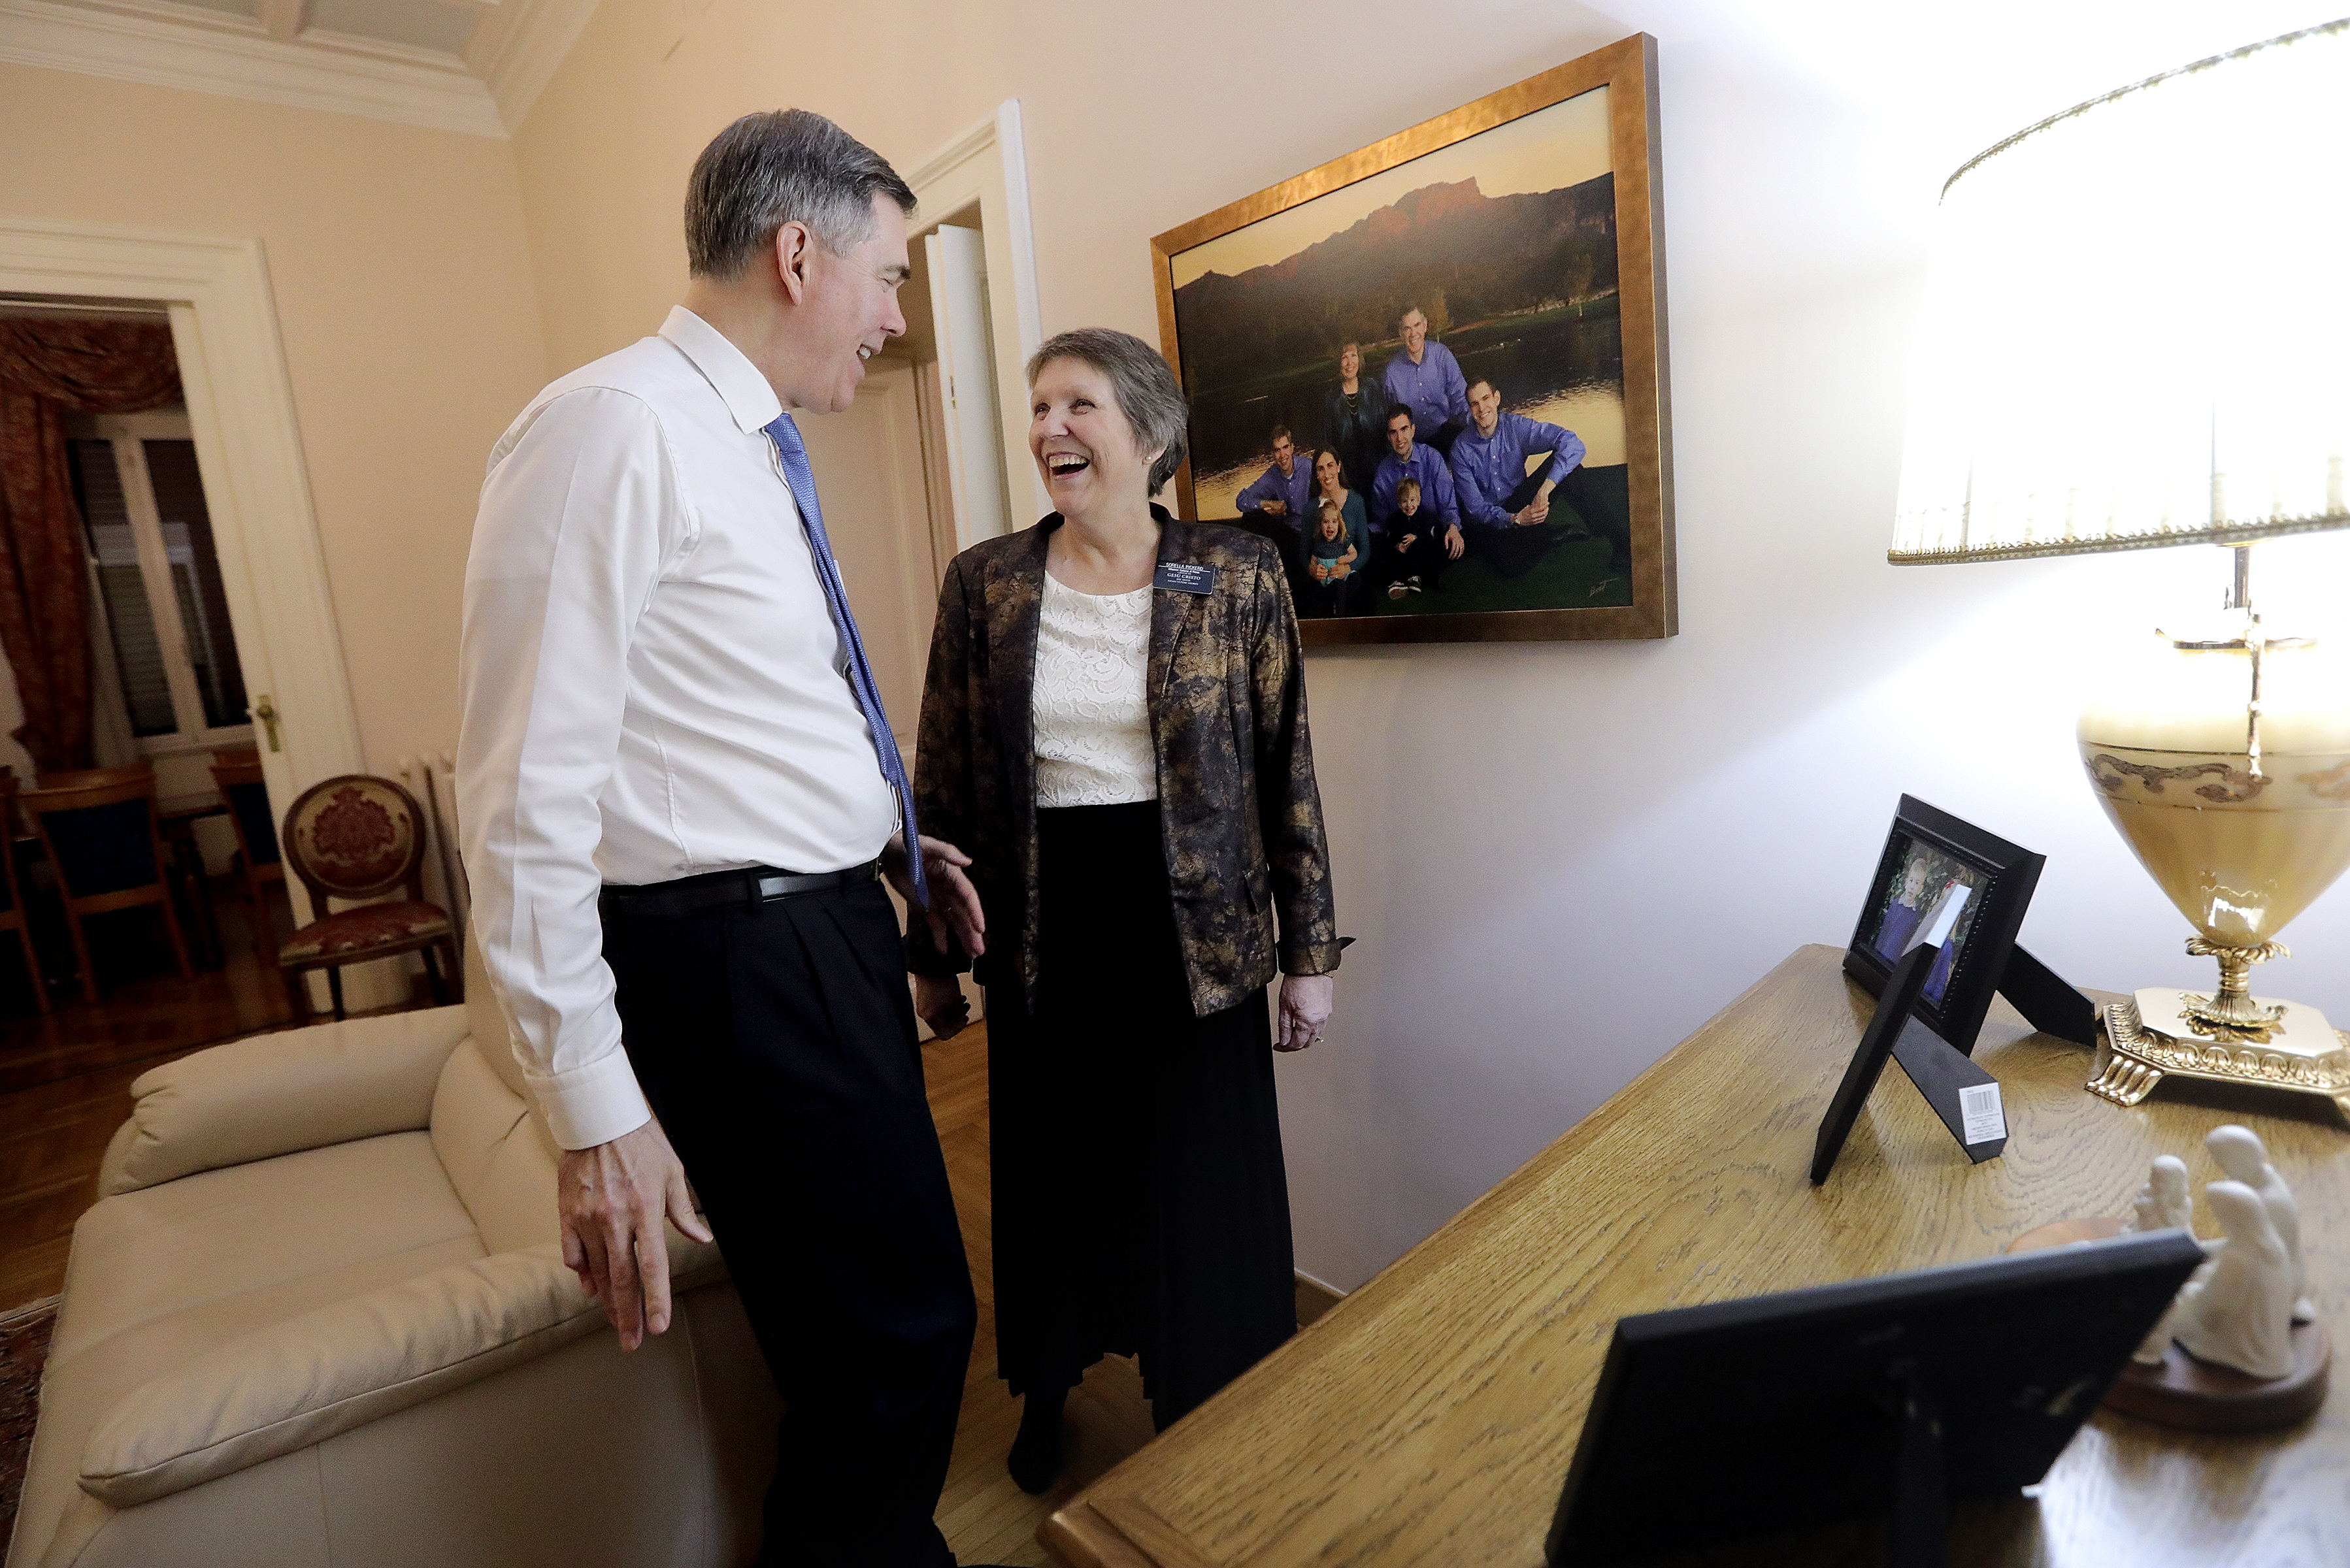 President Michael D. Pickerd, of the Italy Rome Mission, and Sister Marian W. Pickerd laugh at the mission home in Rome, Italy, on Friday, Nov. 16, 2018.